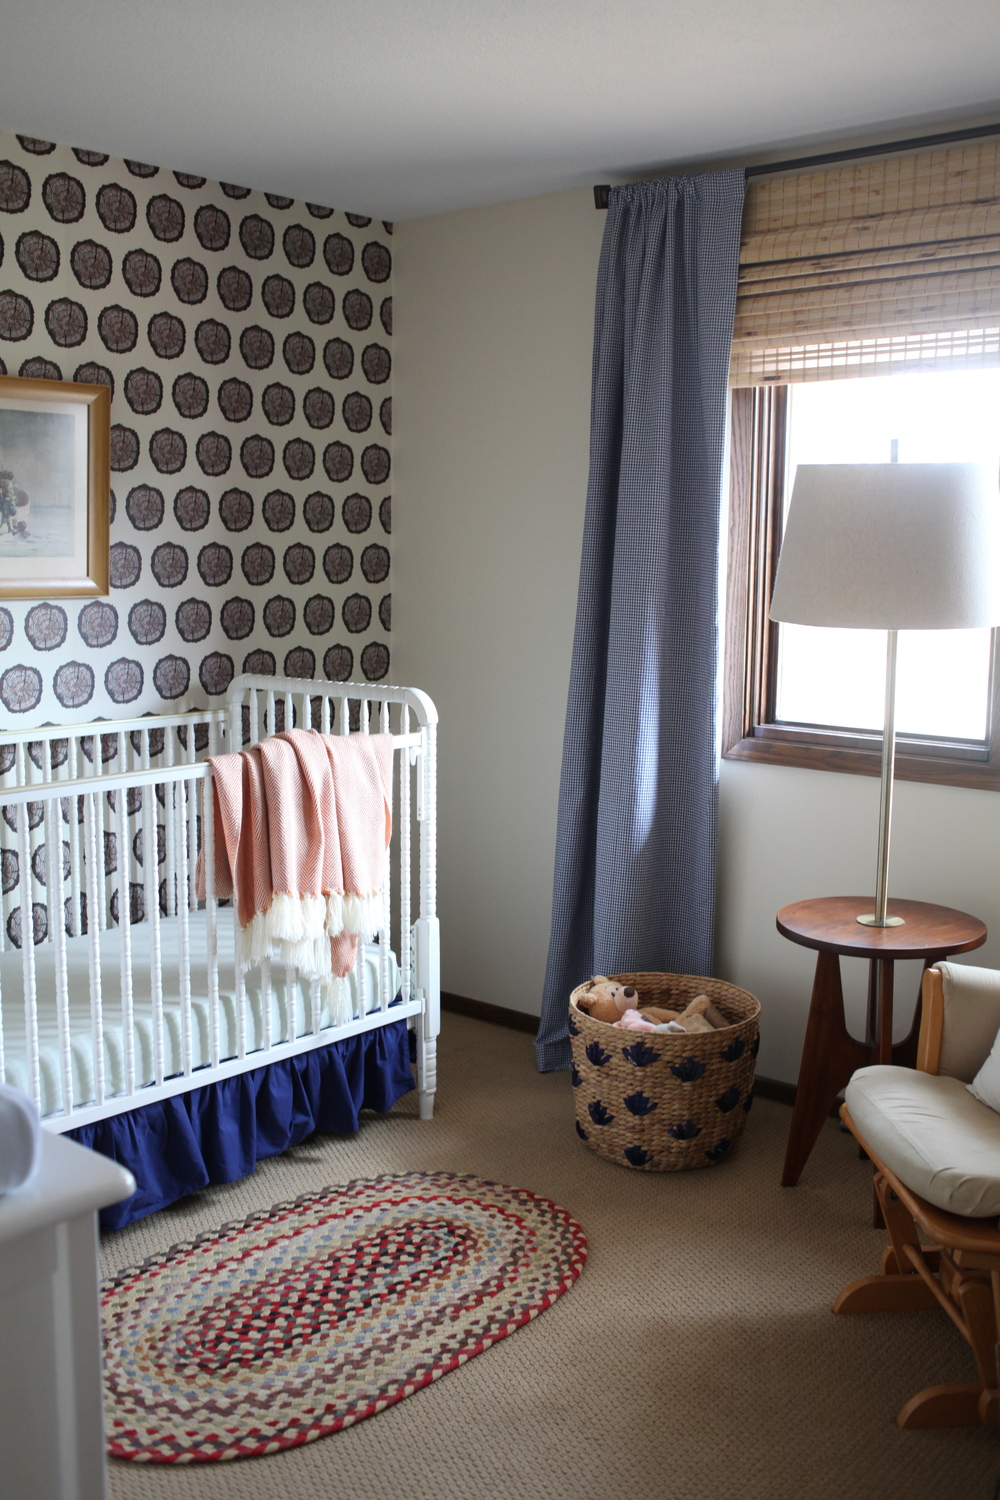 Modern nursery with wood design Spoonflower wallpaper, blue gingham curtains, white Lind crib, colorful rag rug and basket